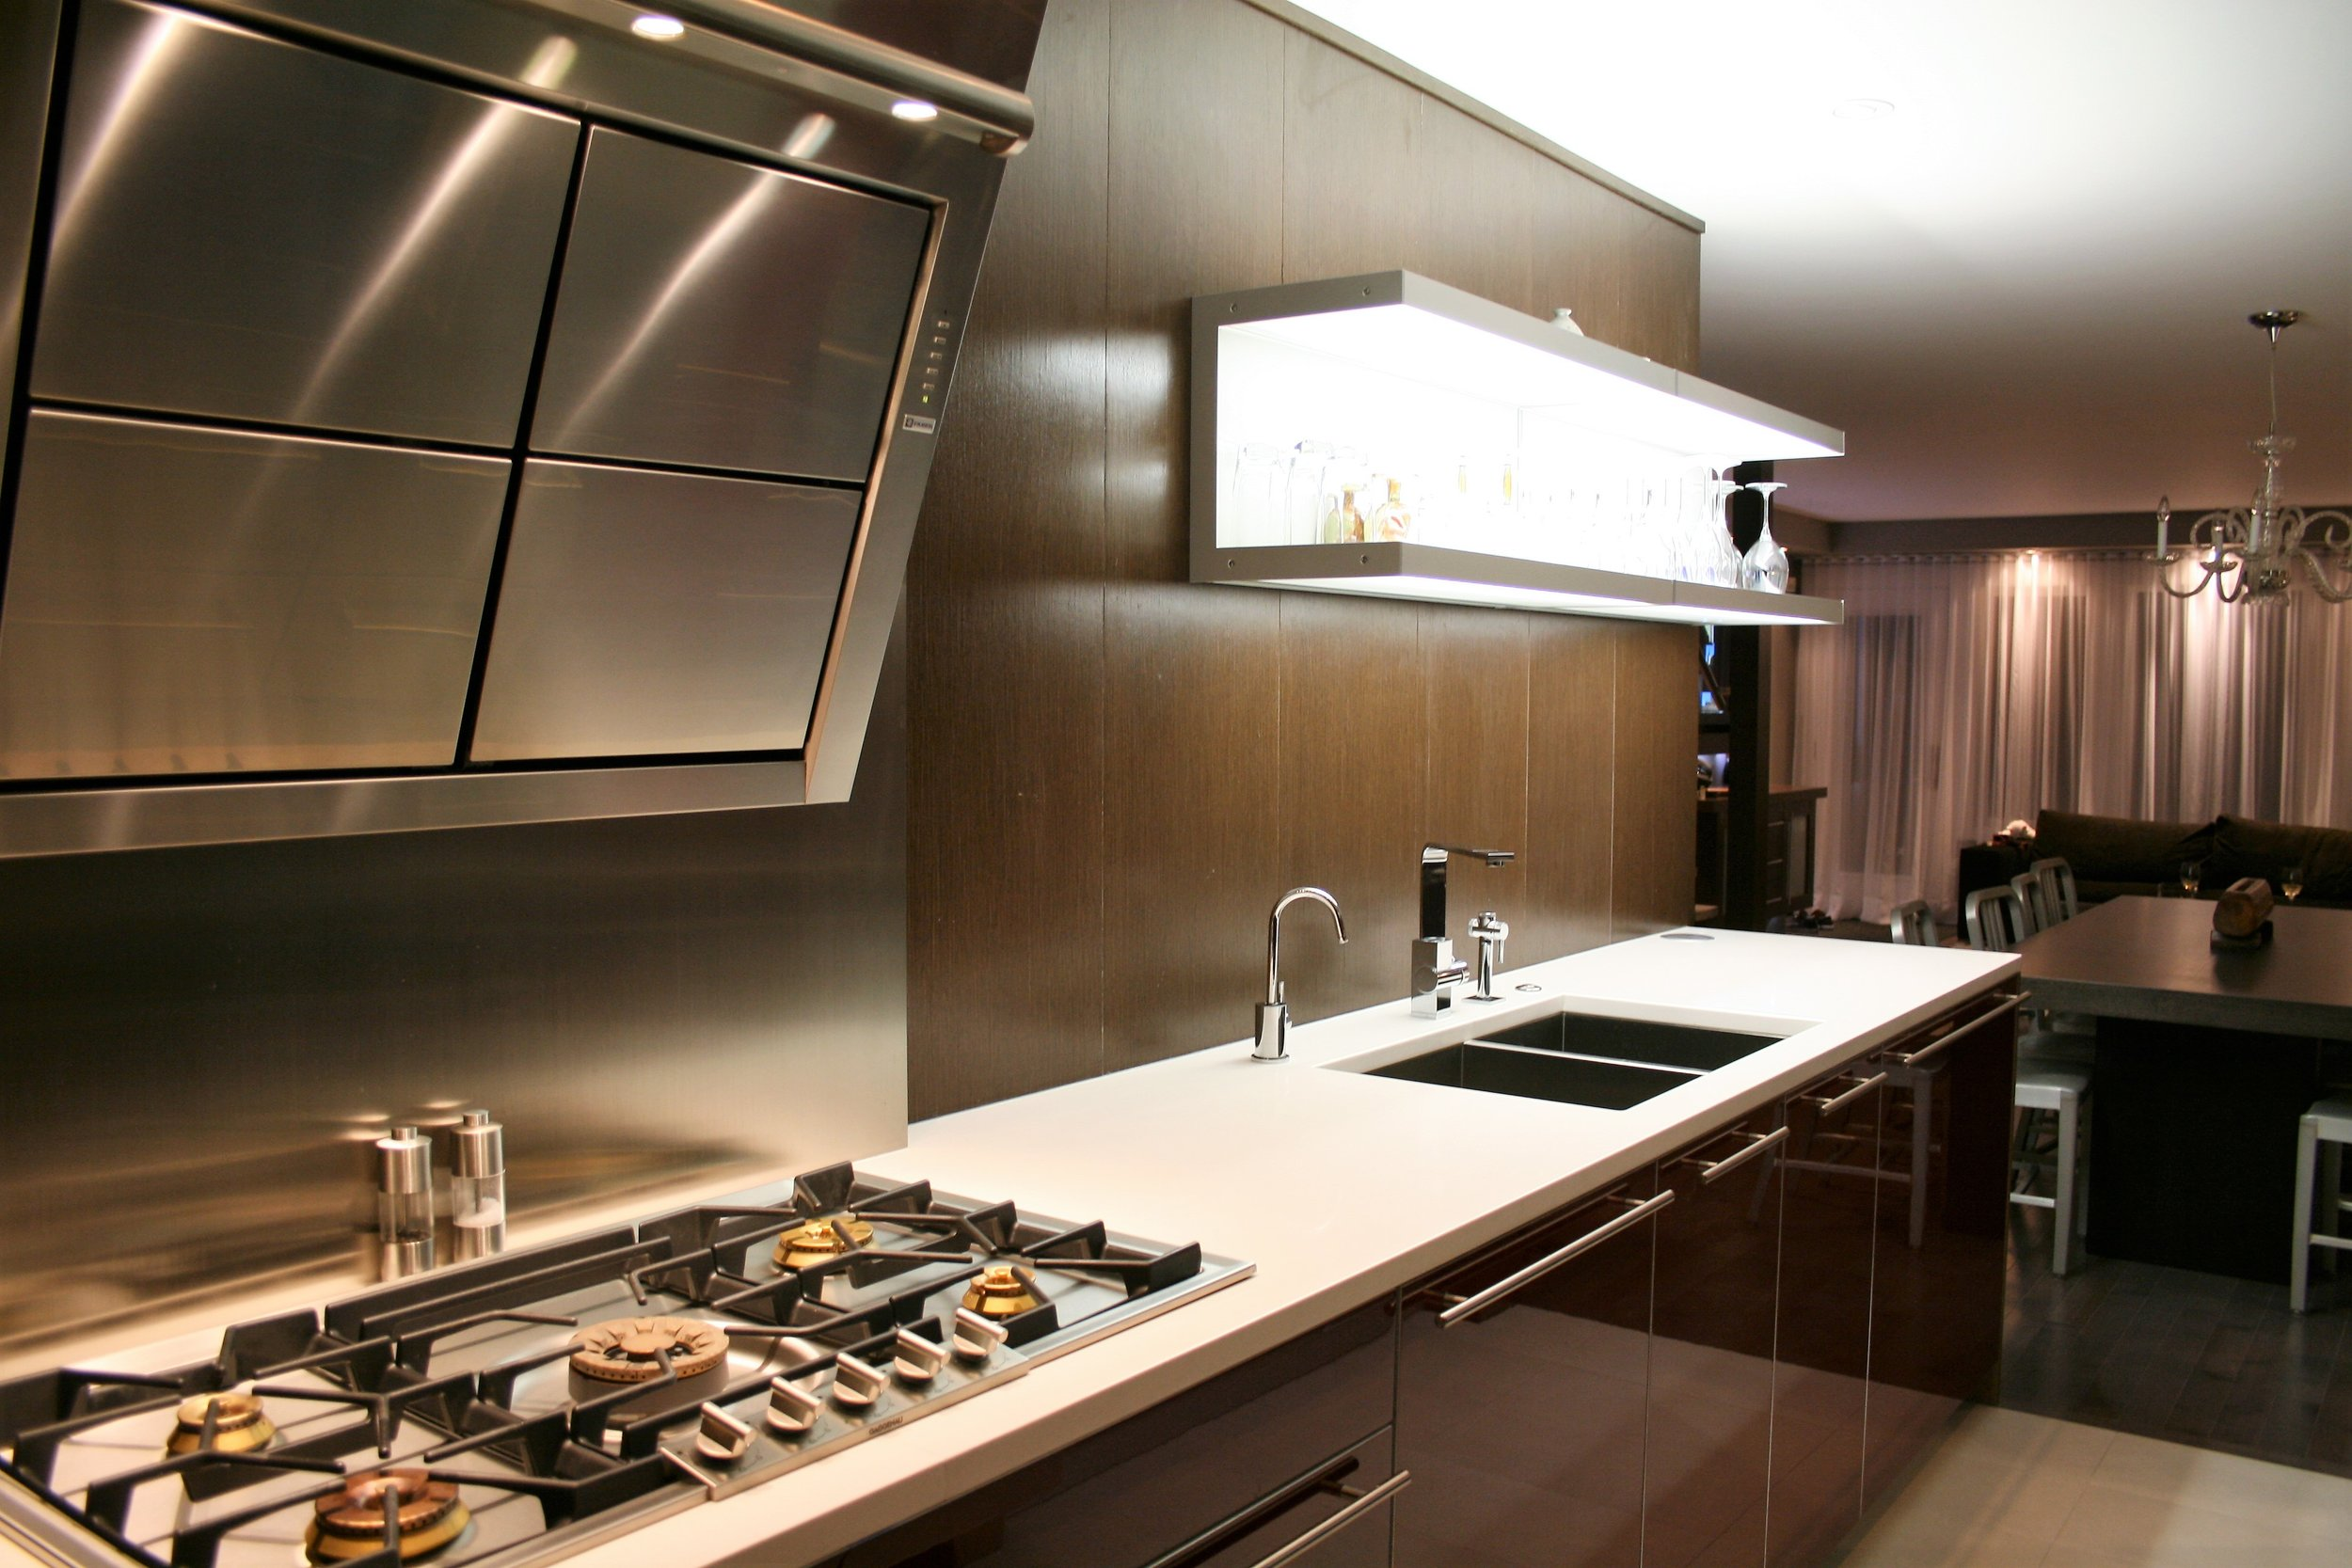 Hillhearst-Kitchen2.JPG